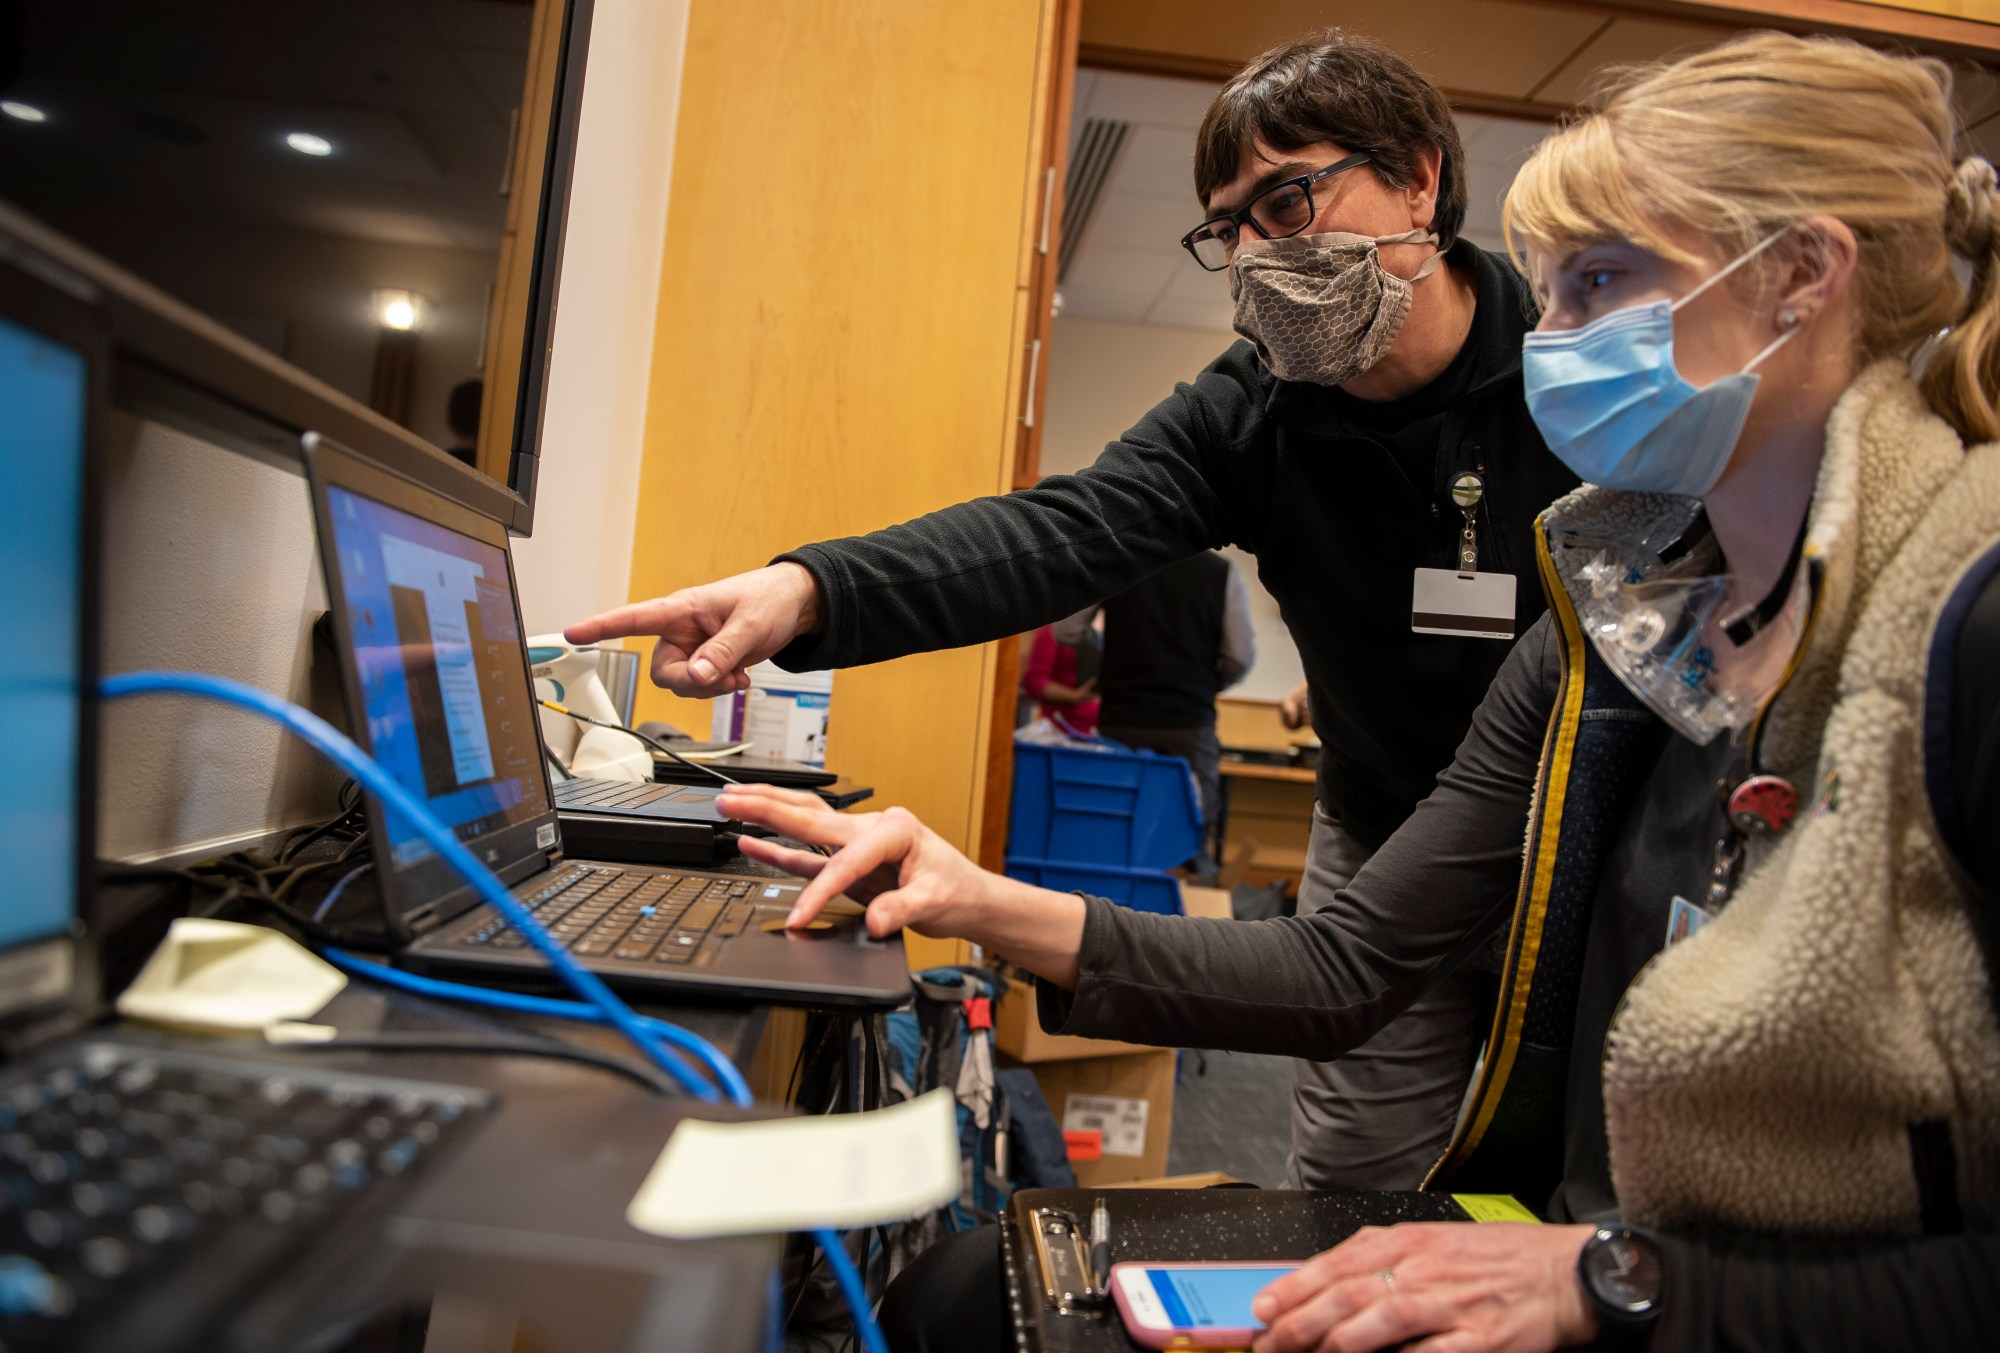 In this photo provided by the University of Vermont Health Network, IT staff help clinical providers set up new computers at the University of Vermont Medical Center in Burlington, Vt., on Friday, Nov. 20, 2020. (Ryan Mercer/University of Vermont Health Network via AP)